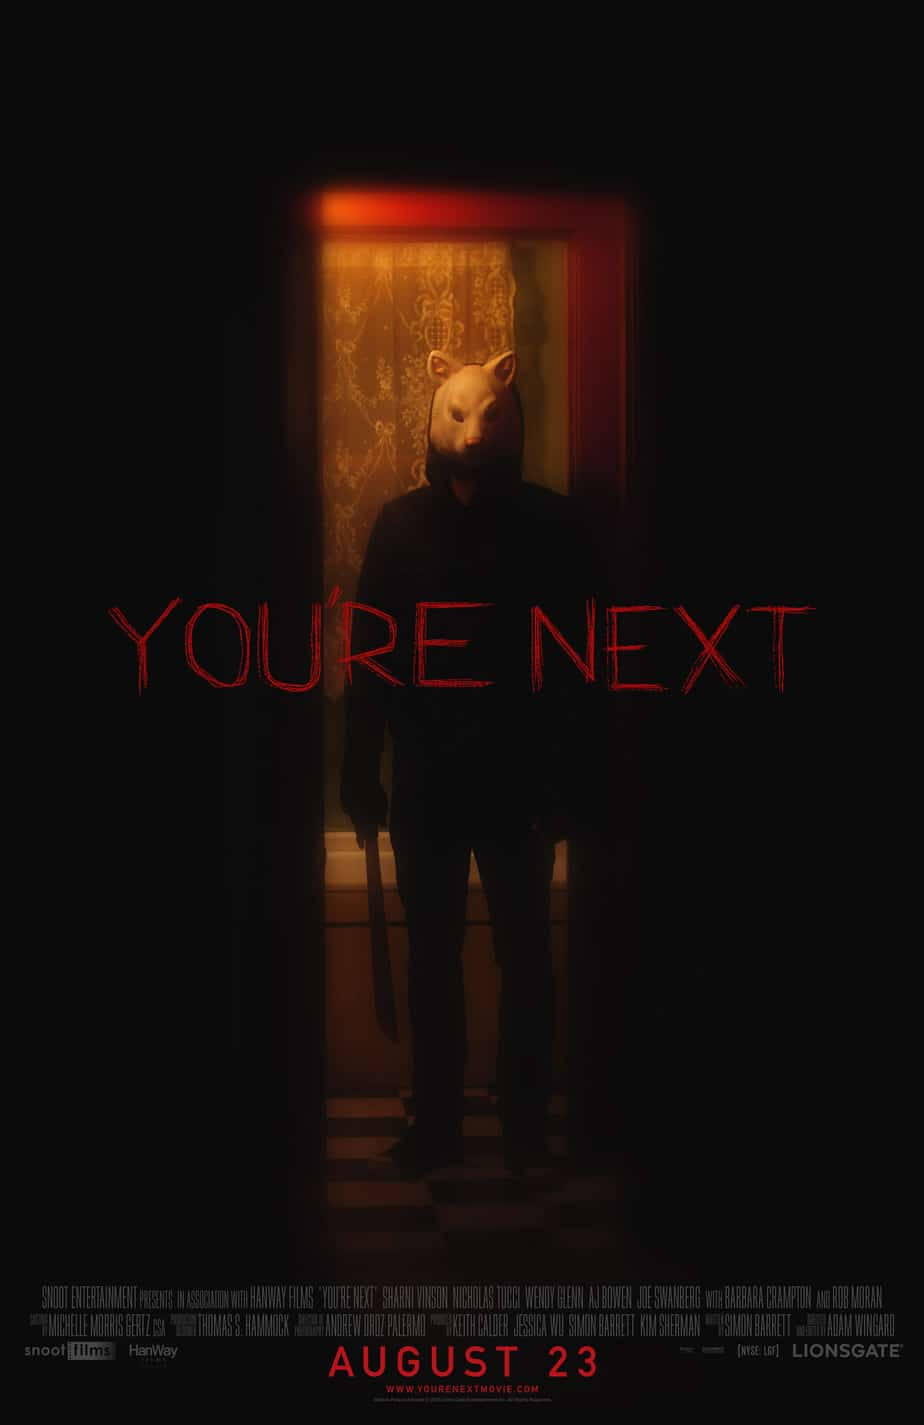 Youre-Next-Theatrical-Poster